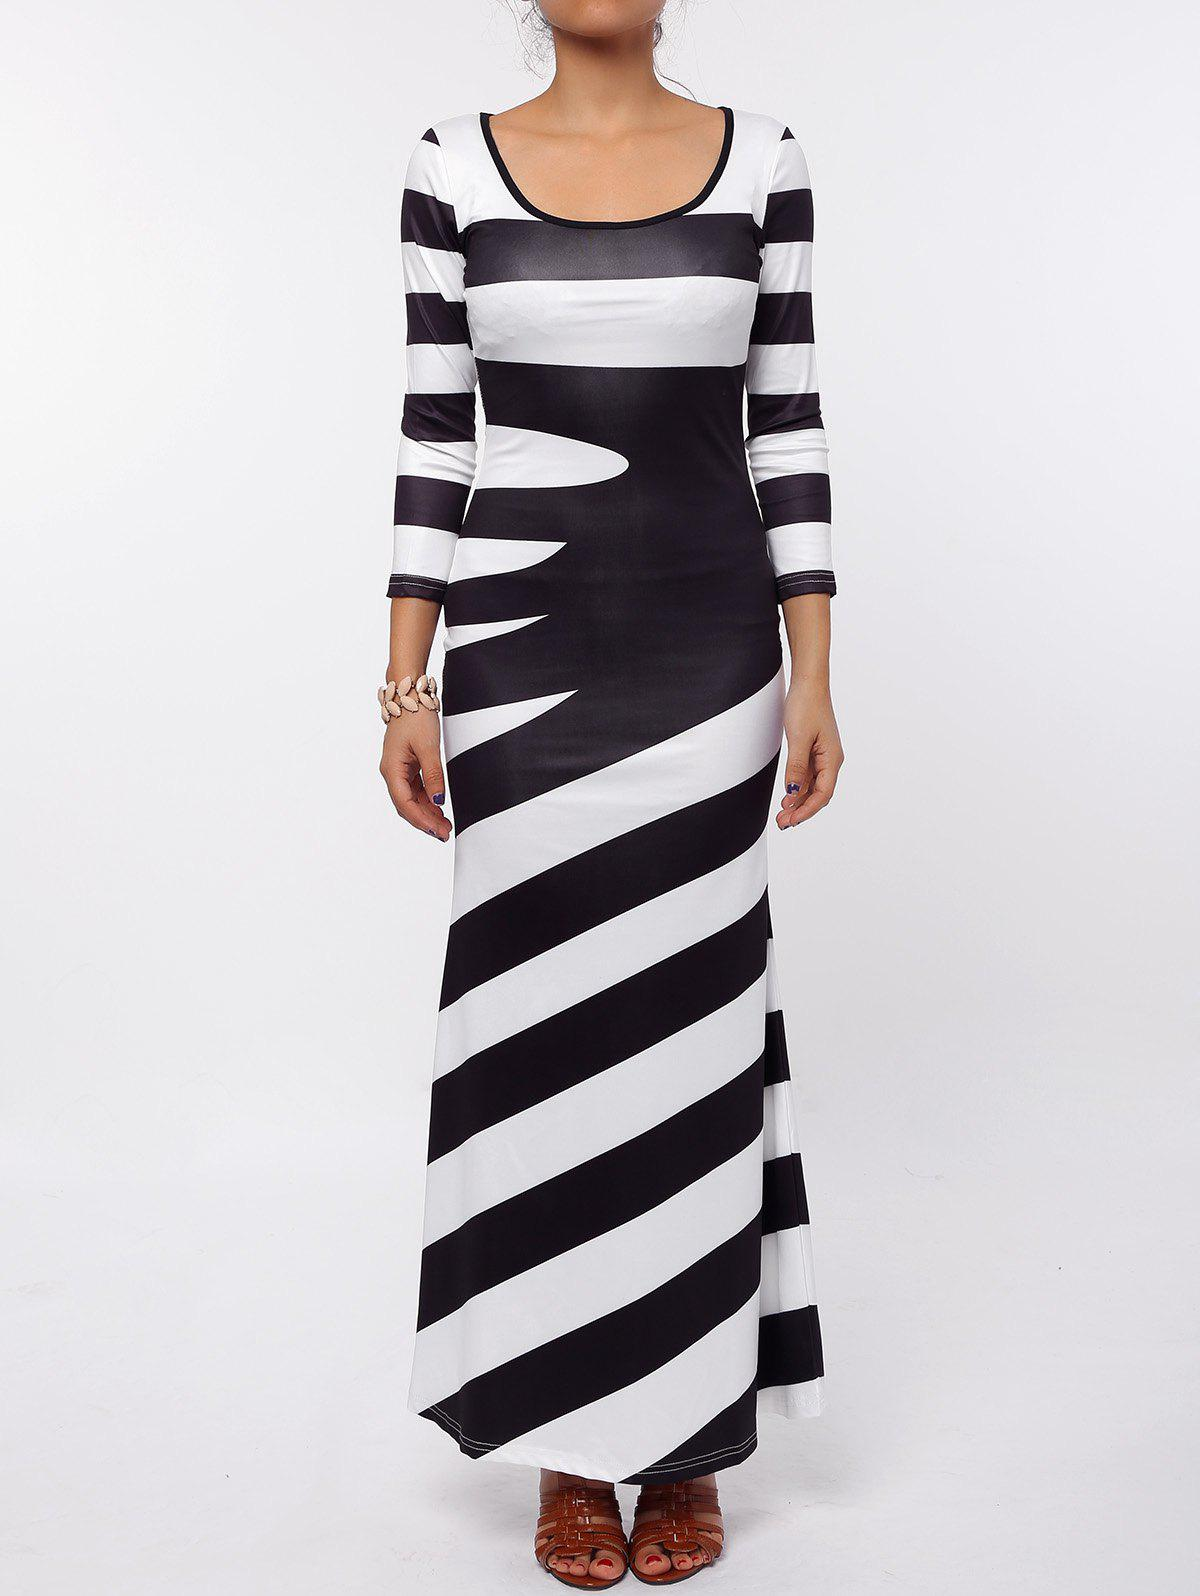 Maxi Scoop Neck Striped Evening DressWOMEN<br><br>Size: 2XL; Color: BLACK; Style: Brief; Material: Polyester; Silhouette: A-Line; Dresses Length: Ankle-Length; Neckline: Scoop Neck; Sleeve Length: Sleeveless; Pattern Type: Striped; With Belt: No; Season: Fall,Spring; Weight: 0.309kg; Package Contents: 1 x Dress;